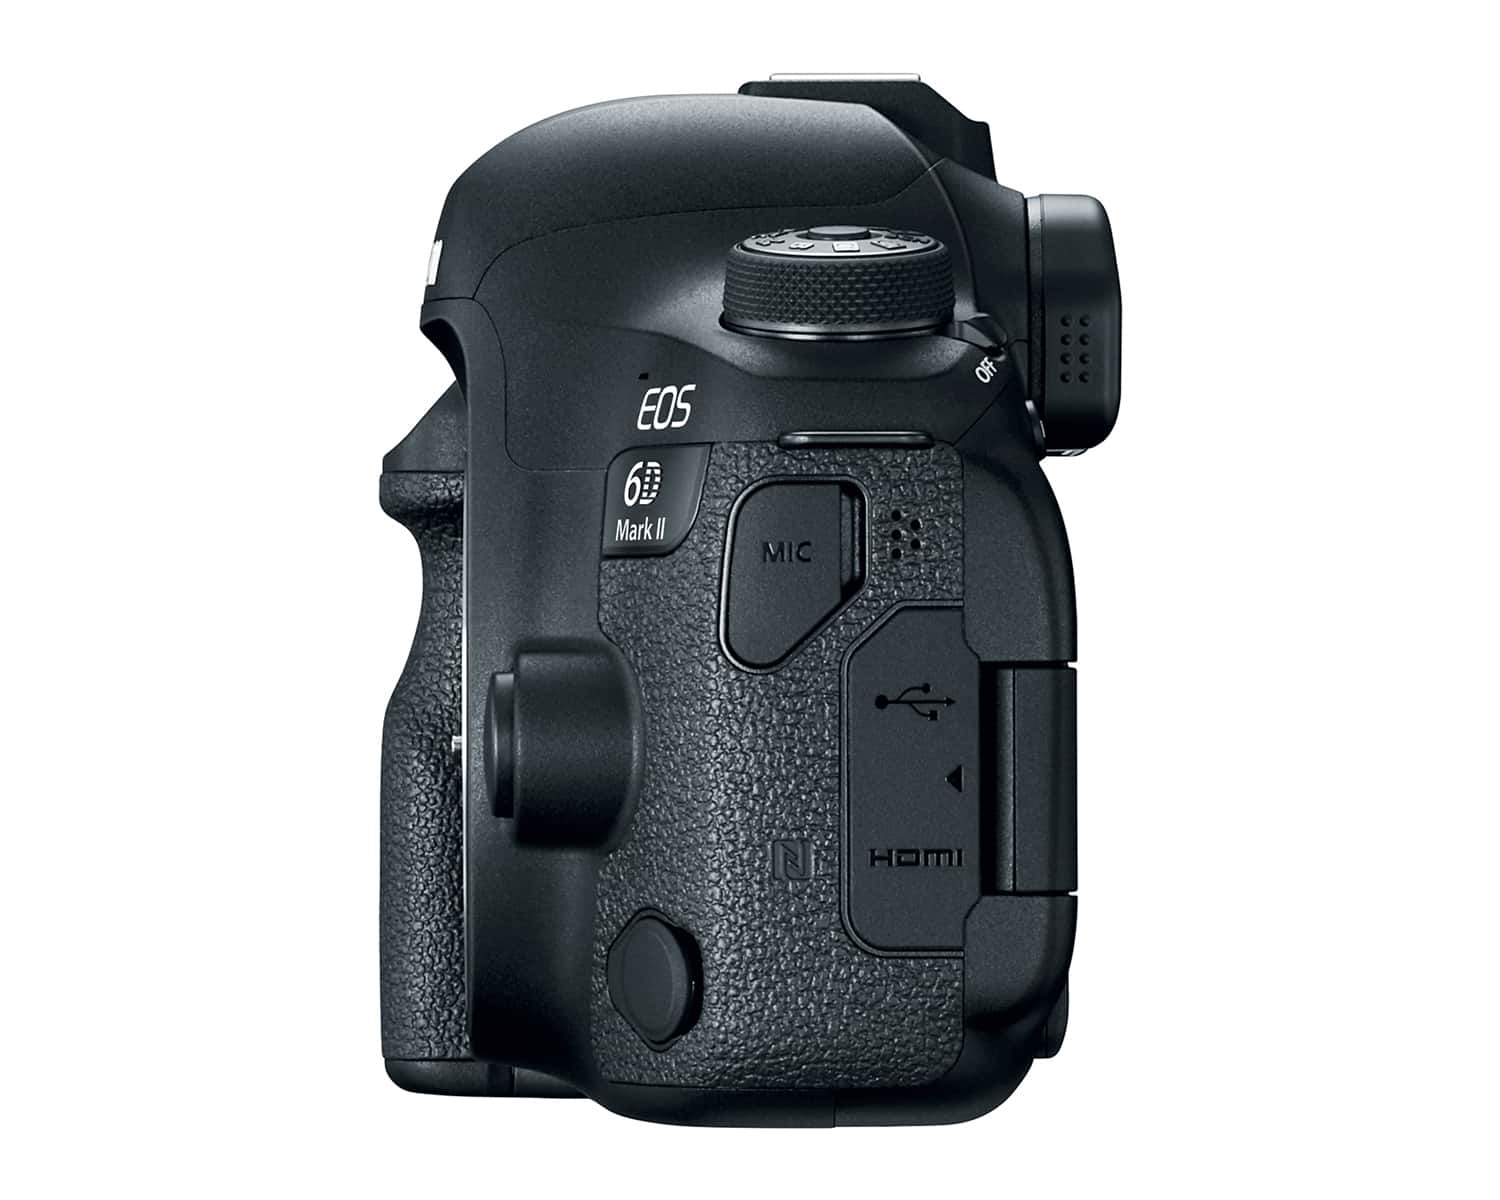 6d markii body terminals left hiRes min image